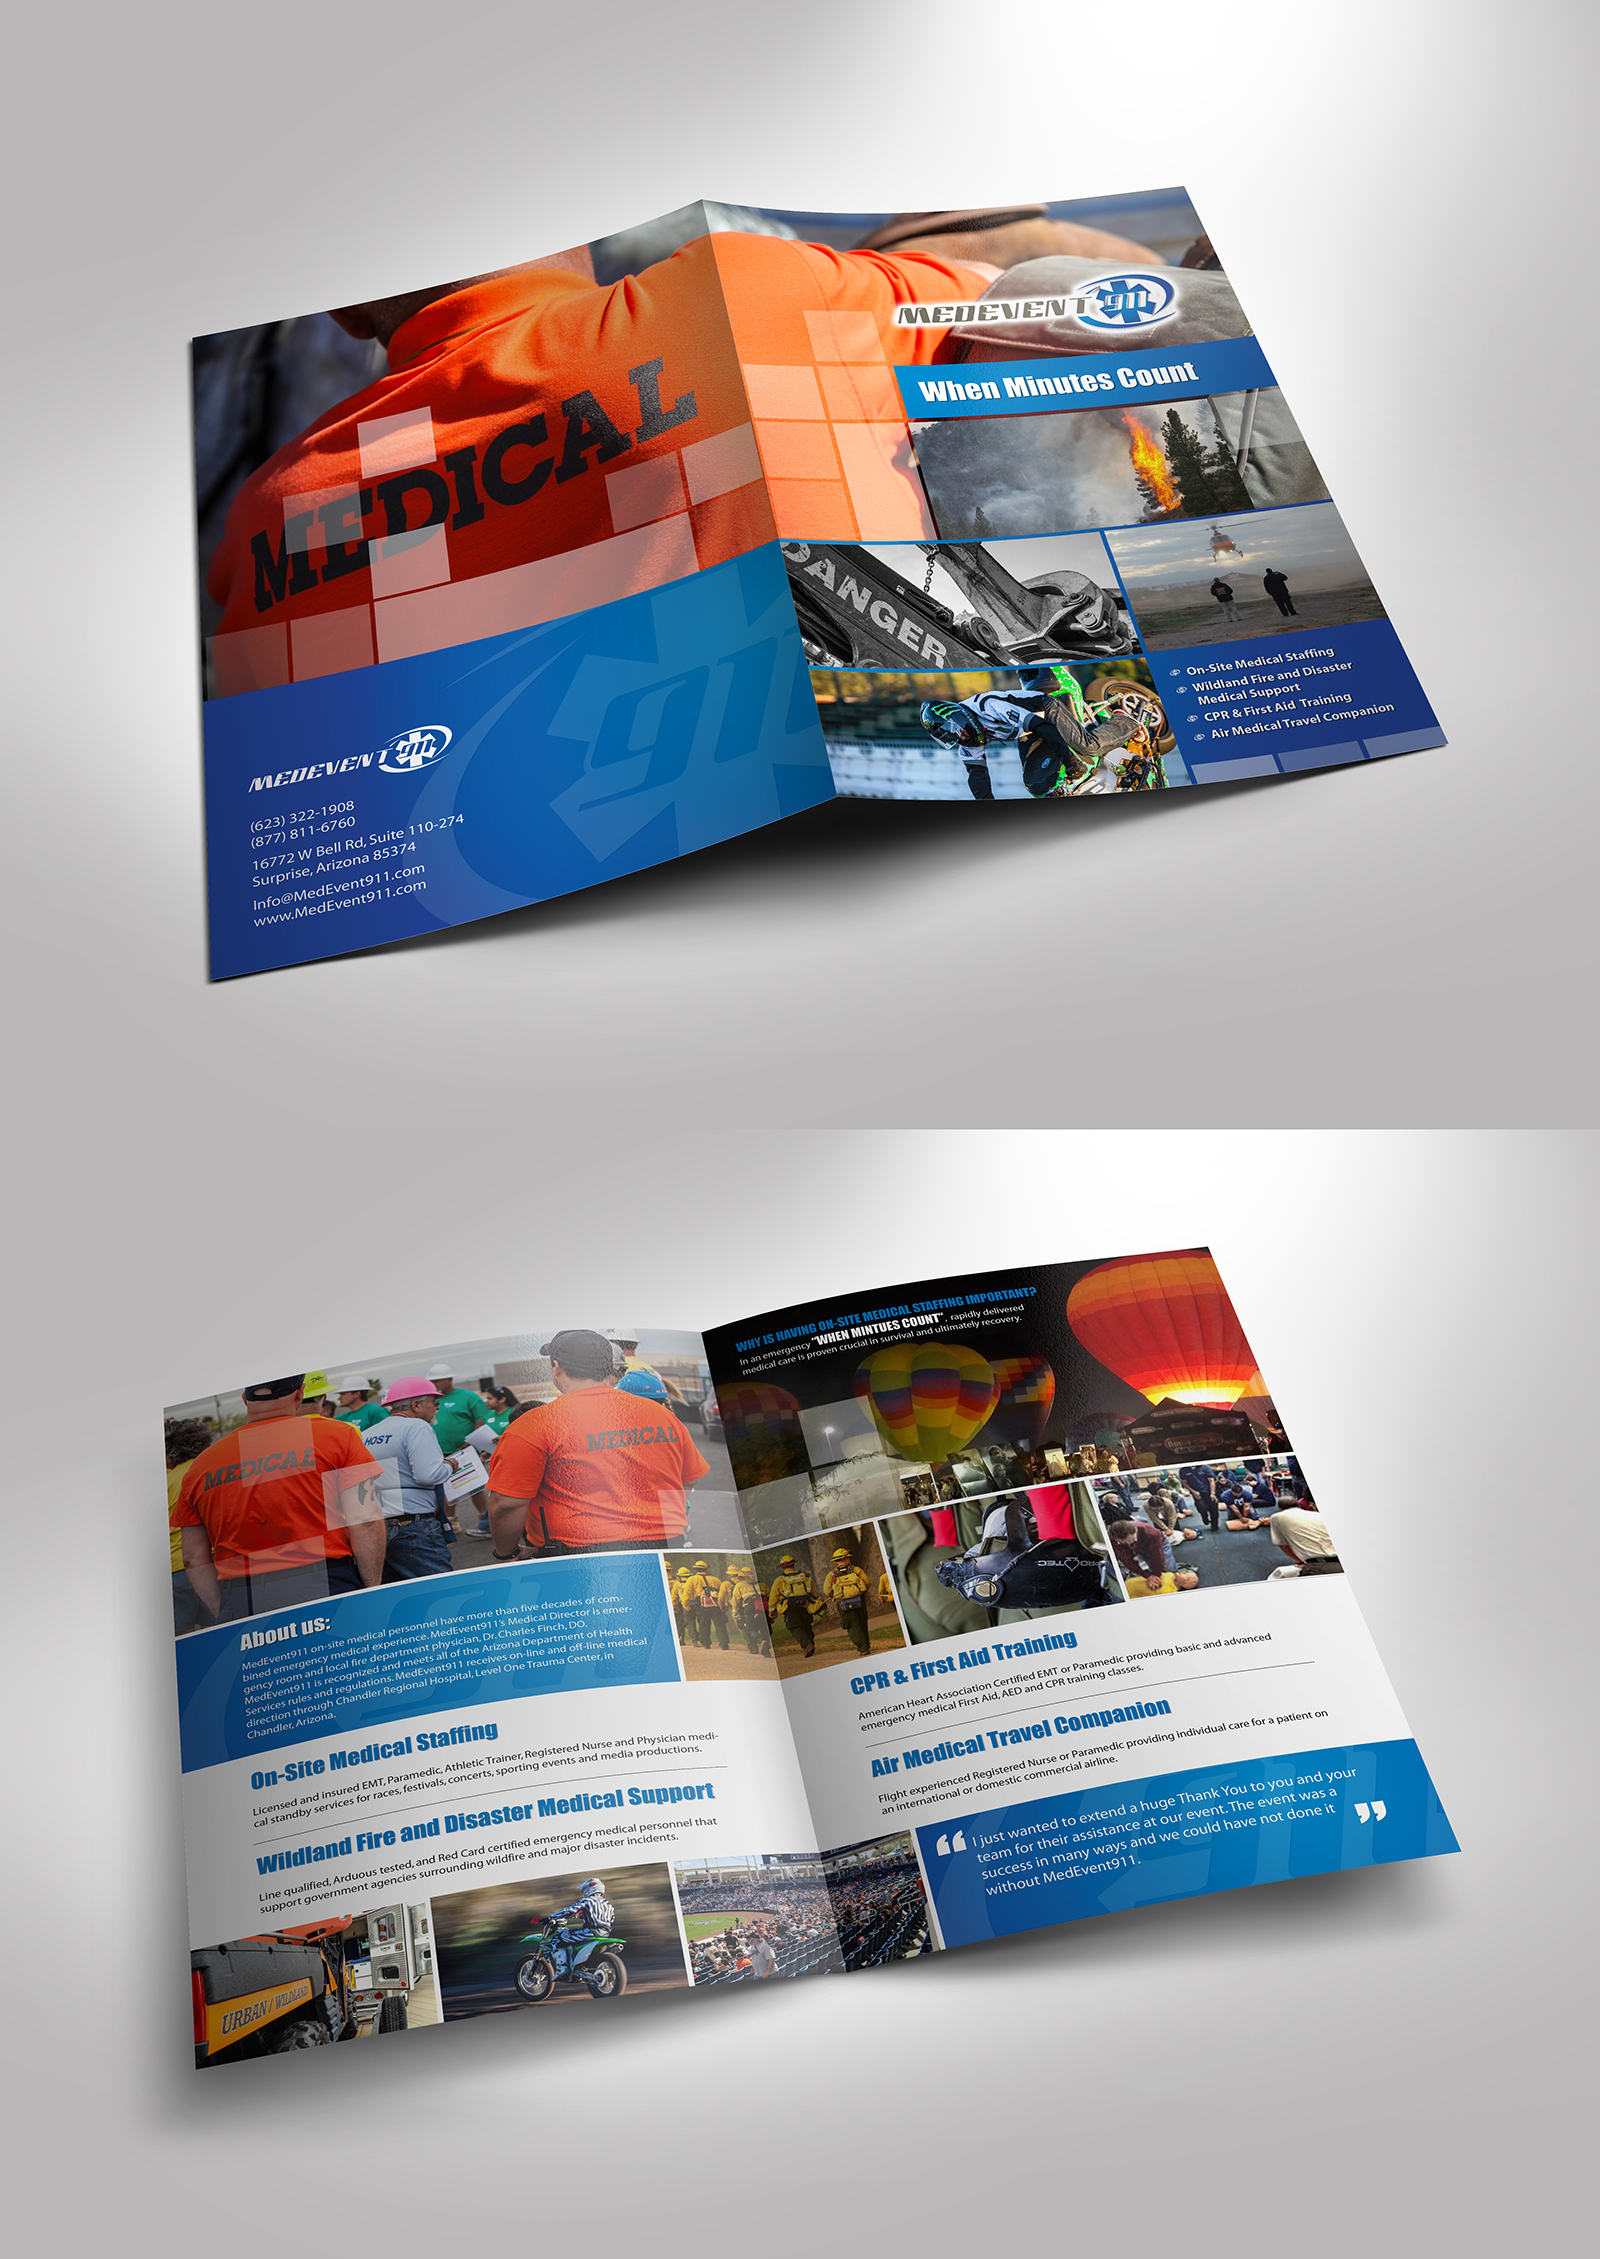 MedEvent911 Core Services Brochure - Emergency Services